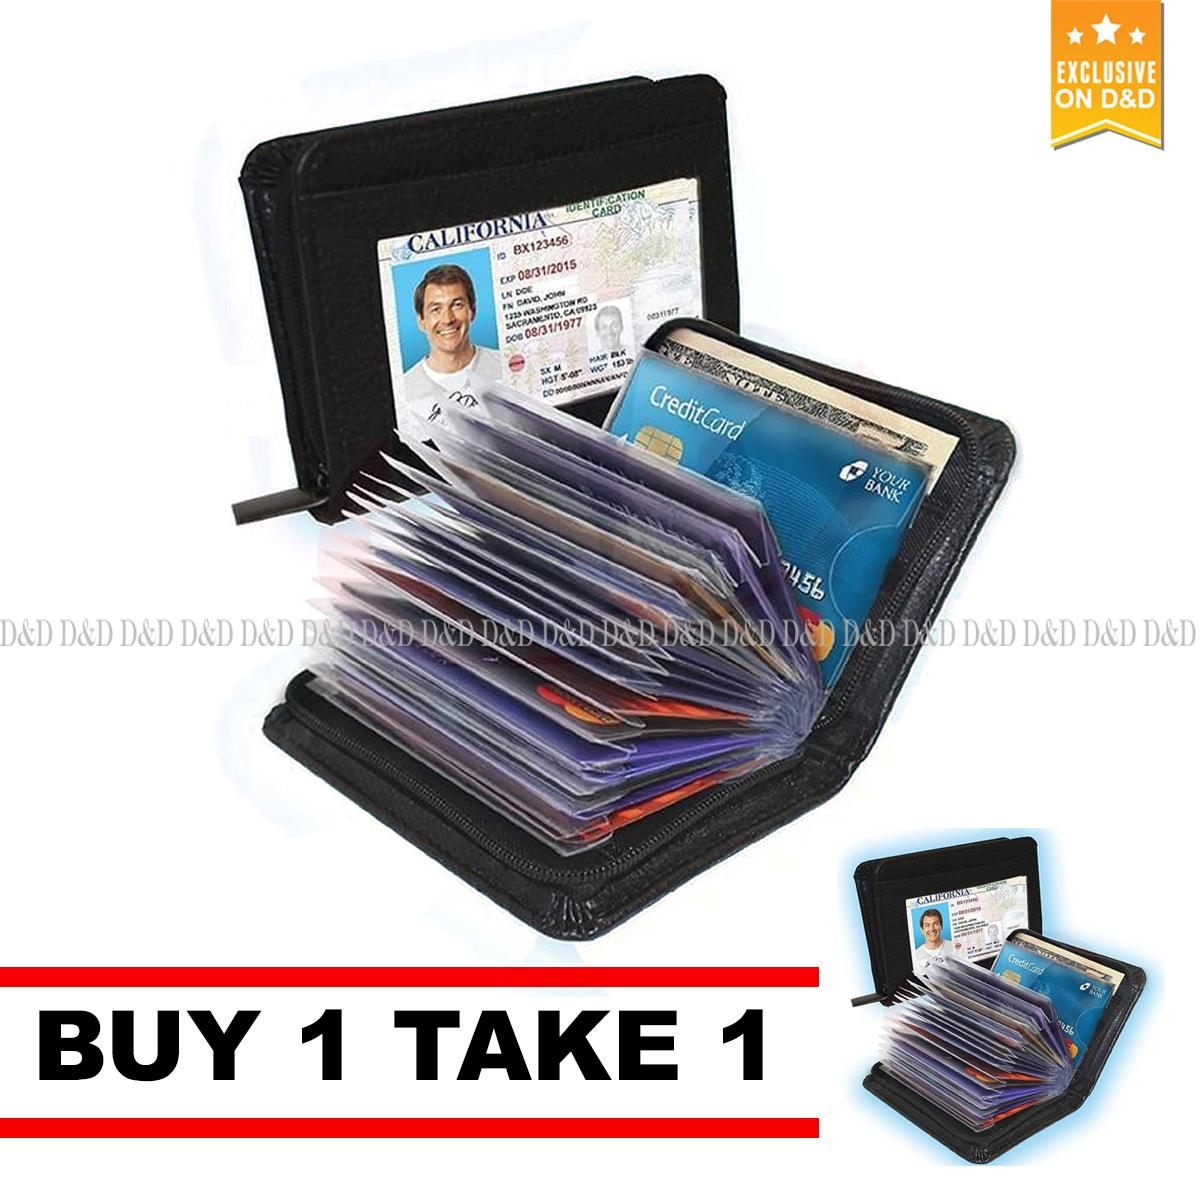 D&D Security Credit Card Wallet  (Black) By 1 Take 1 product preview, discount at cheapest price